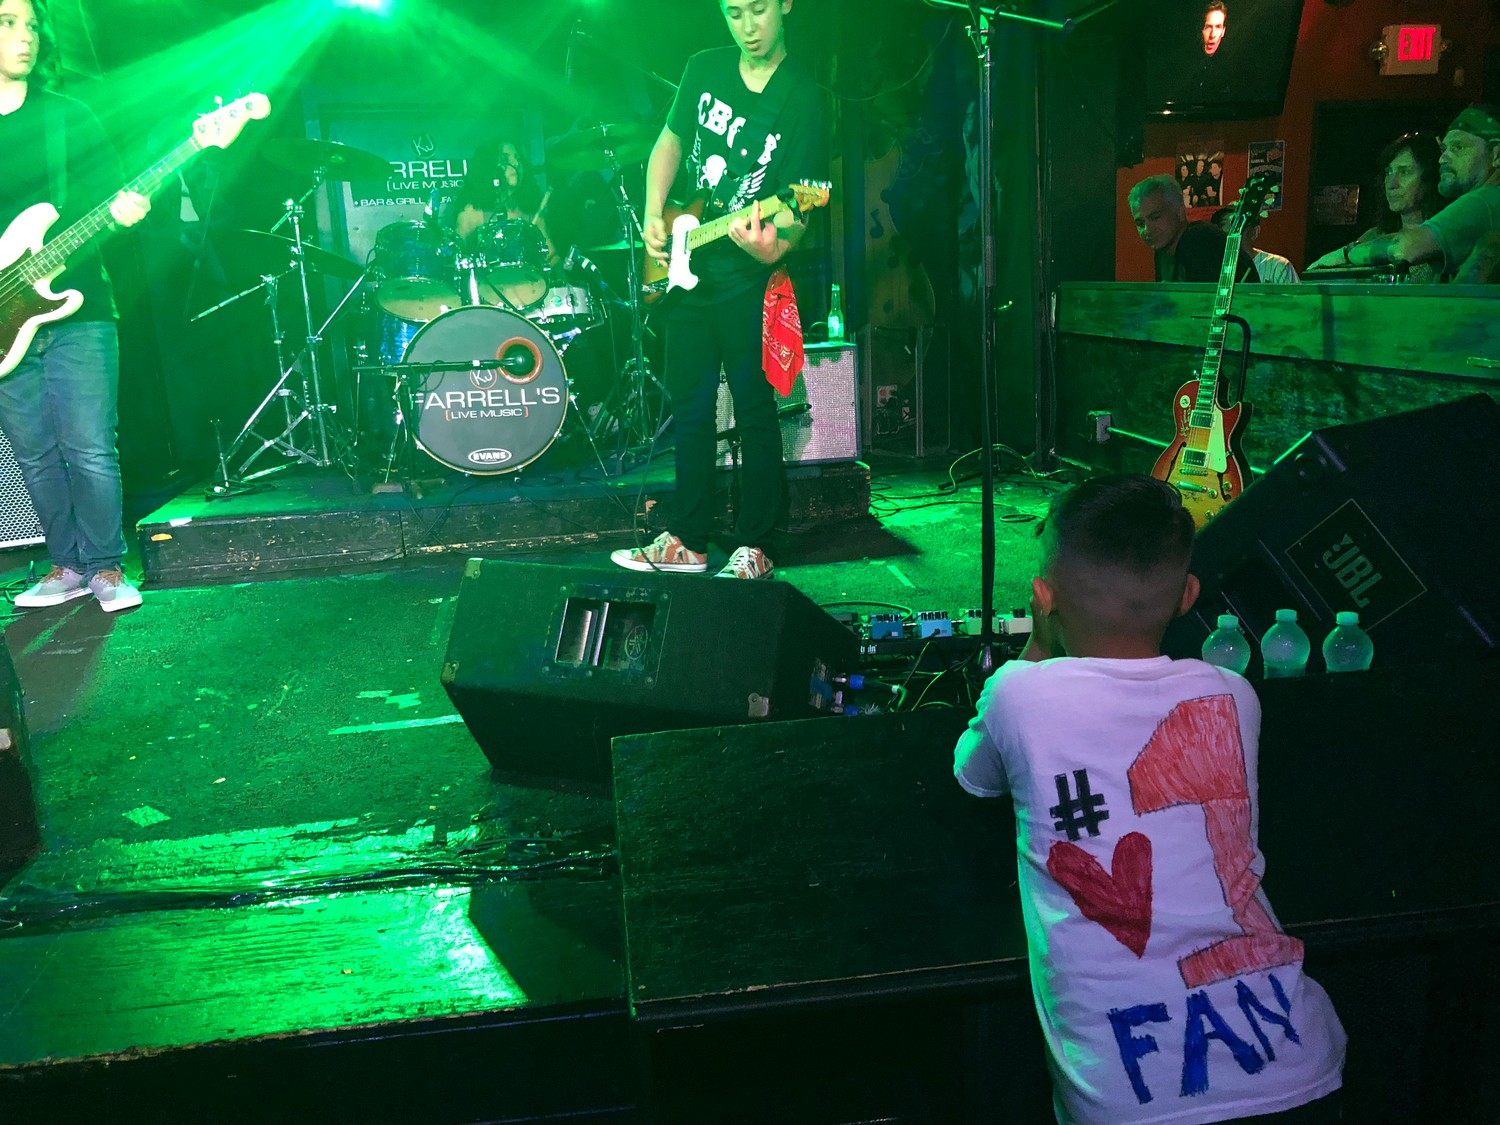 Sons of Sound's No. 1 fan, Bustamante's younger brother, Jake, watched the band at the front of the stage.